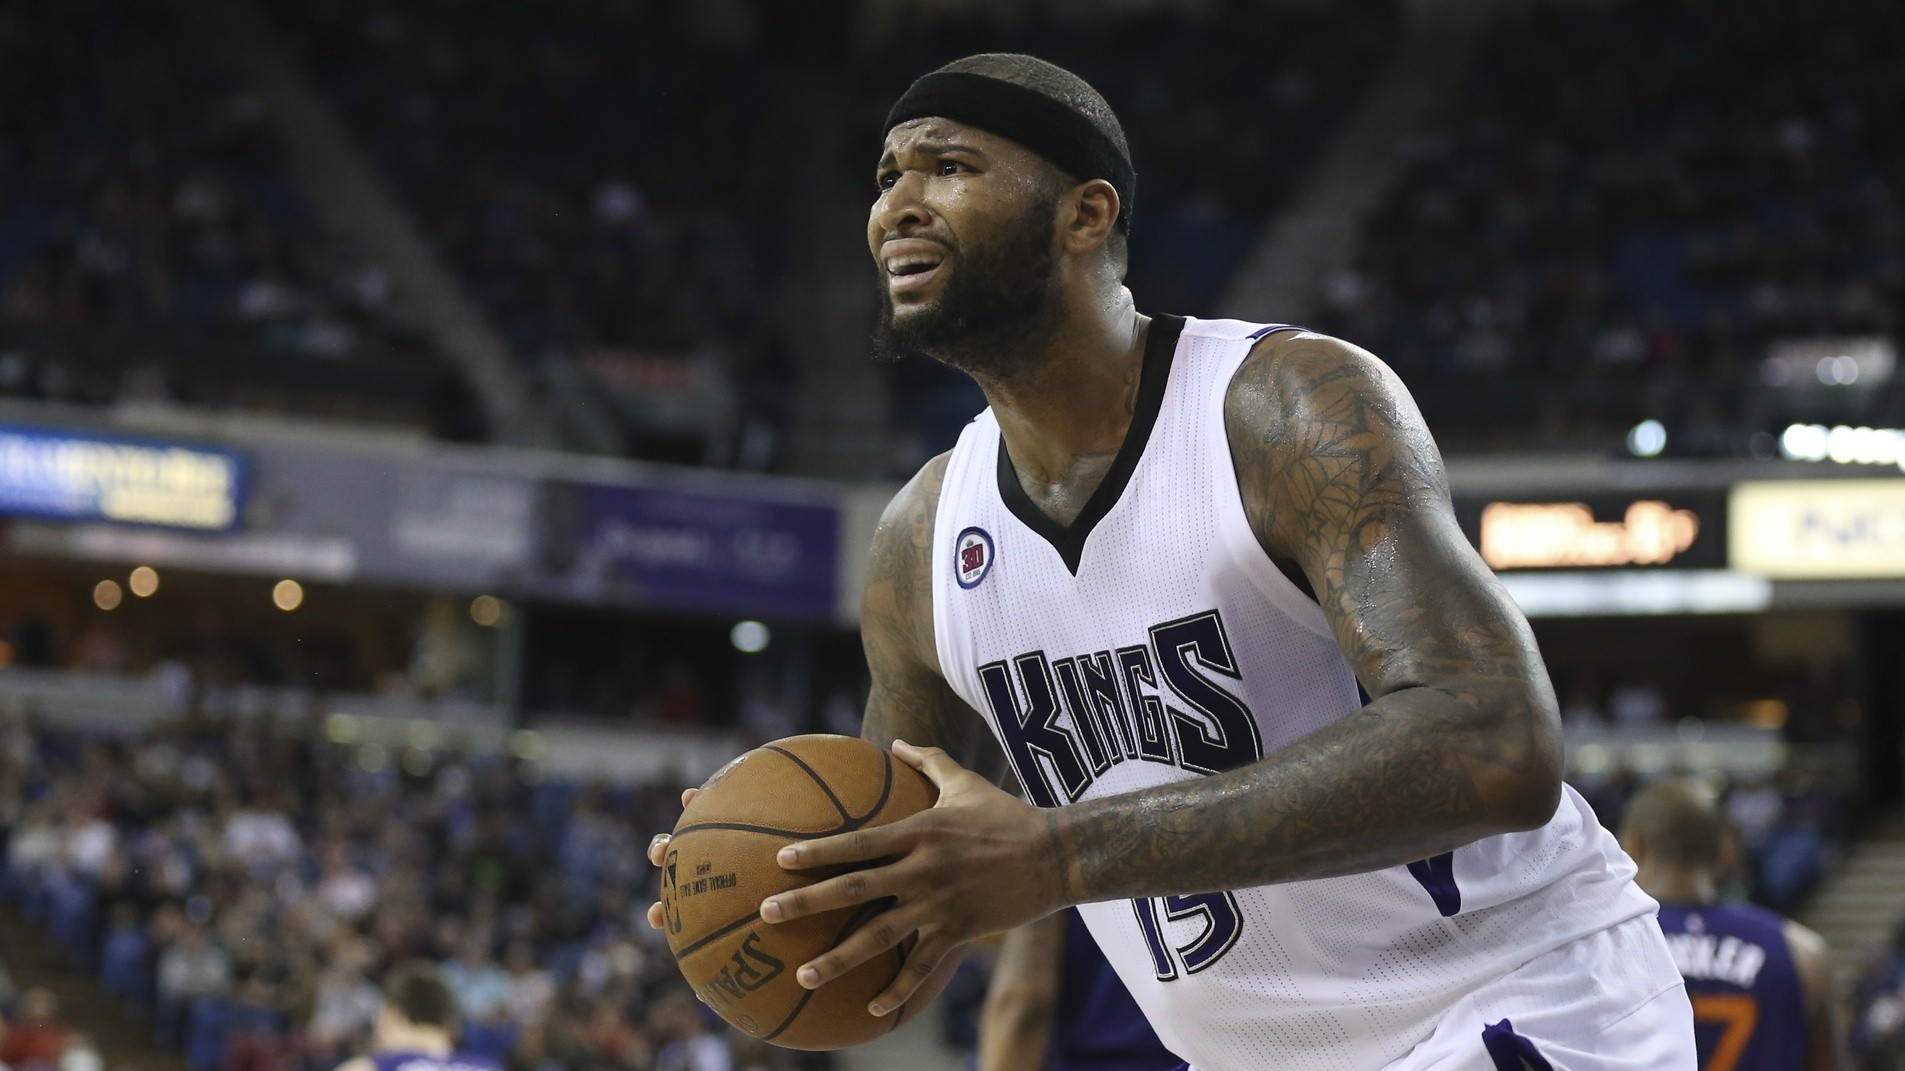 DeMarcus Cousins, George Karl, and the Crisis of the Sacramento Kings